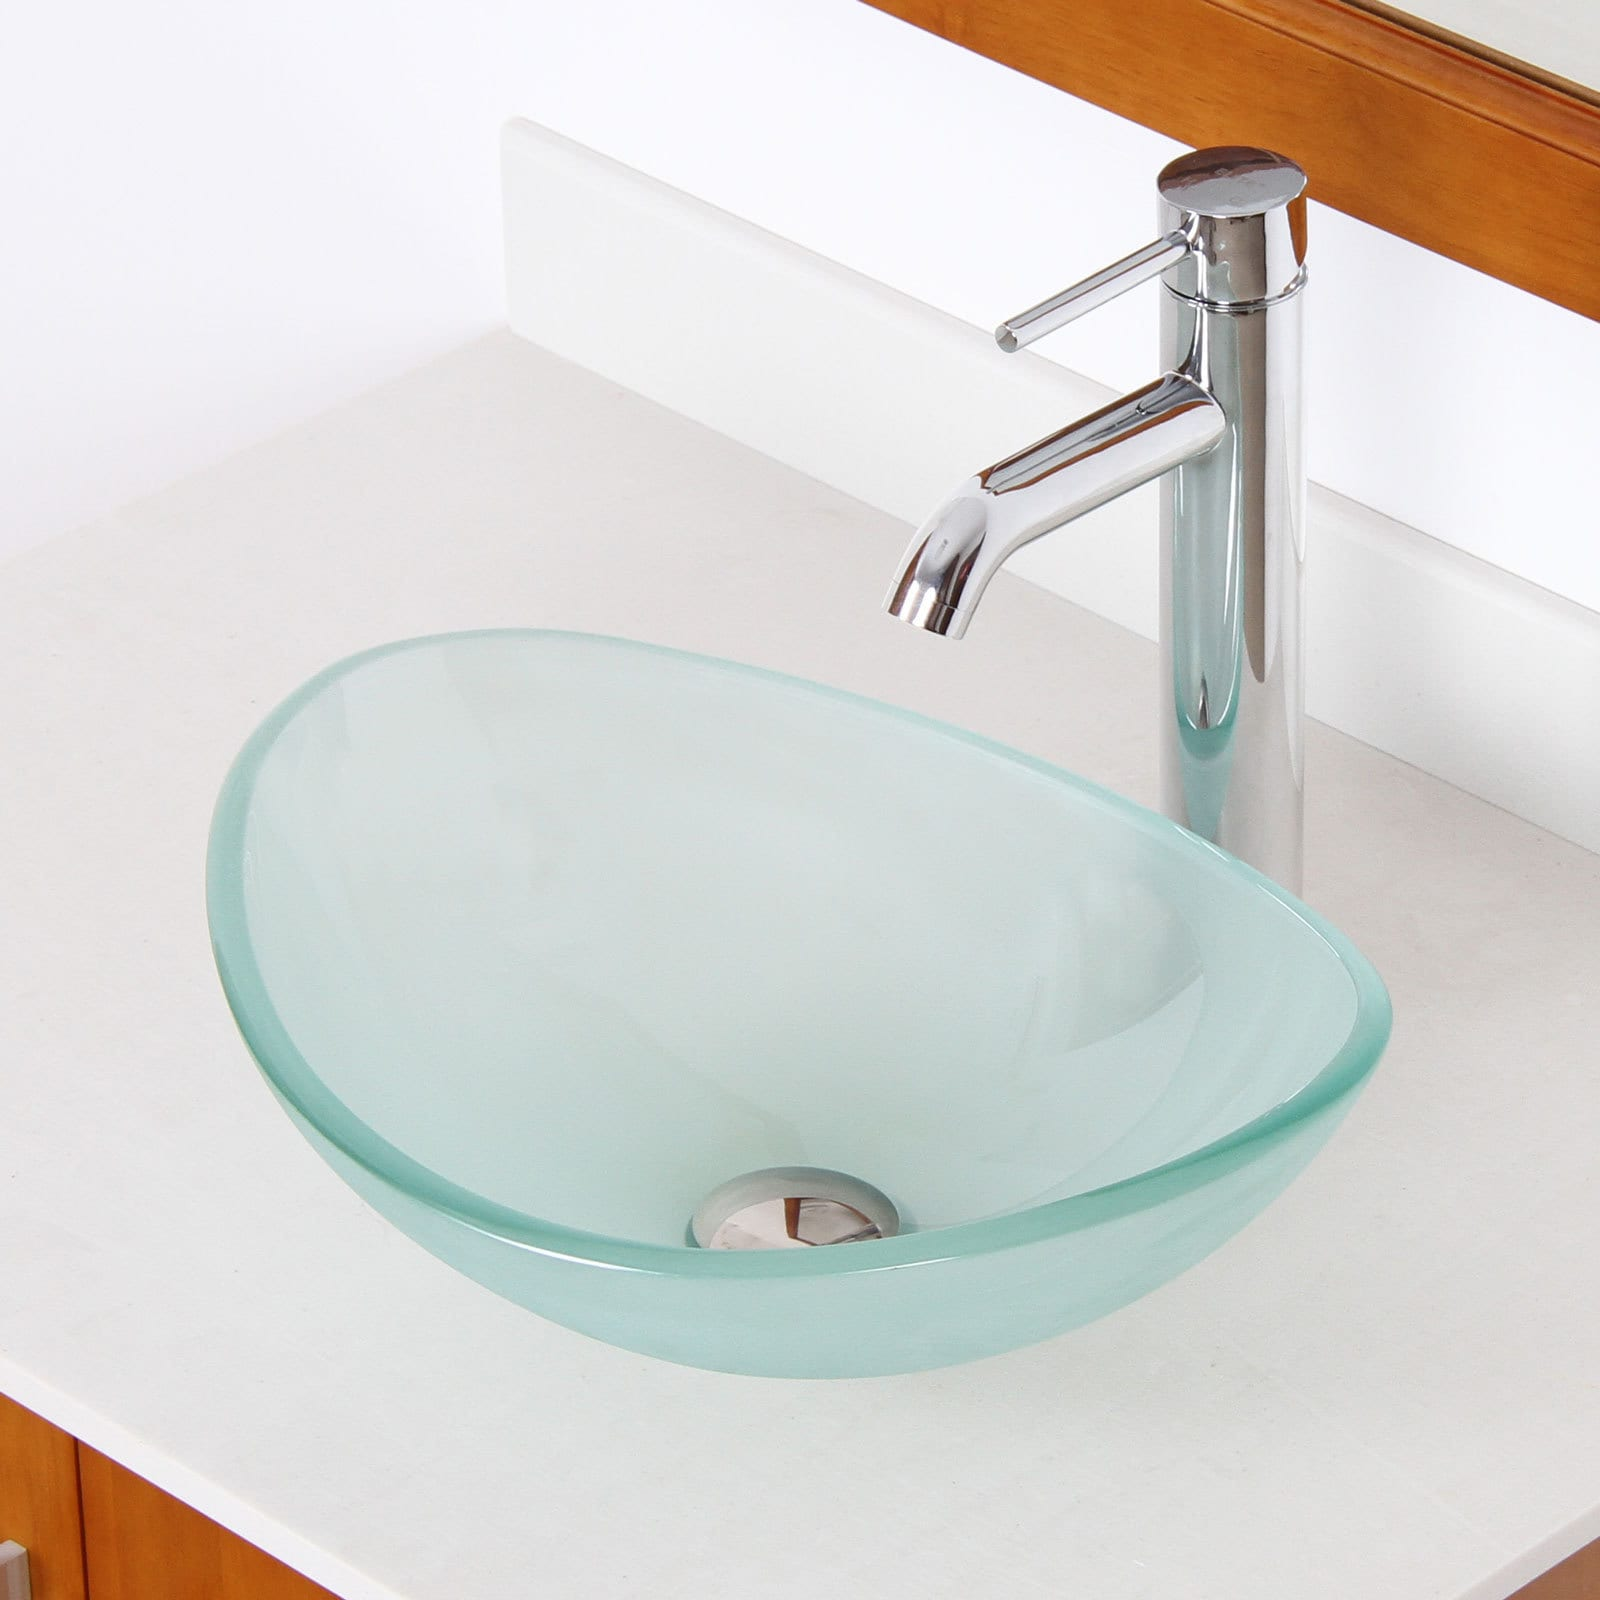 Elite Unique Oval Frosted Tempered Glass Bathroom Vessel Sink With ...